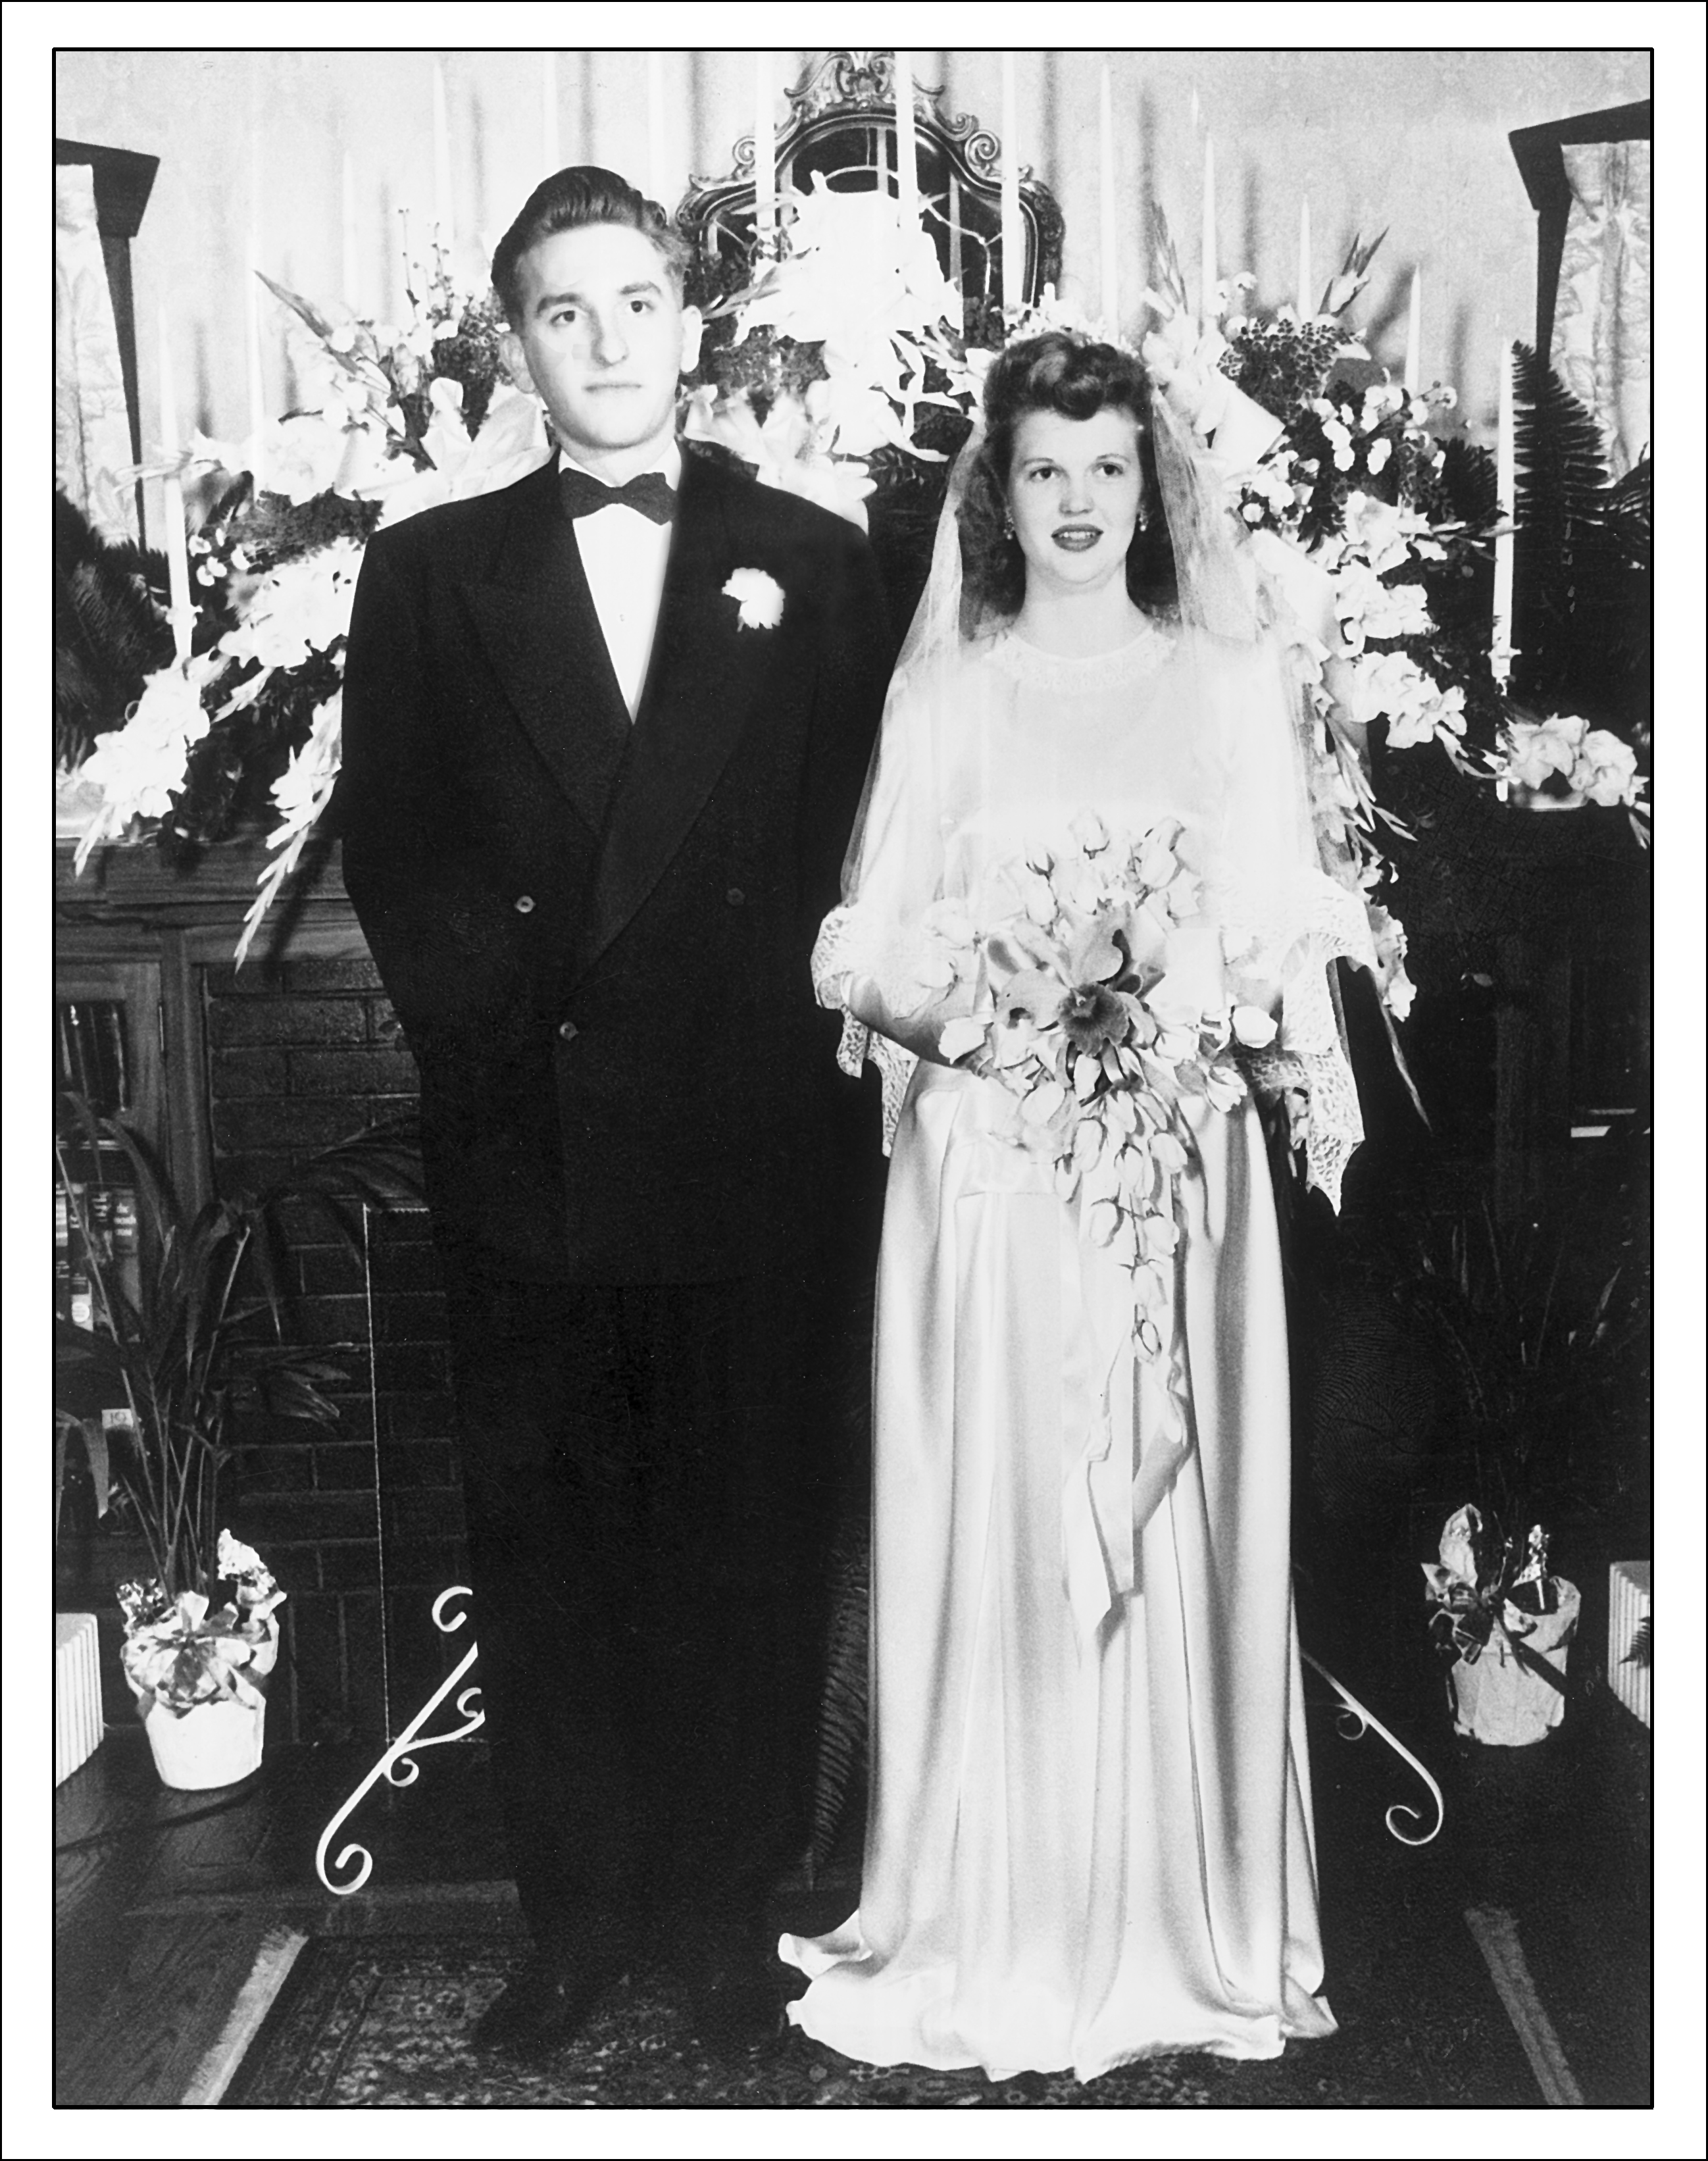 Thomas S. Monson married Frances Beverly Johnson in the Salt Lake Temple in 1948.